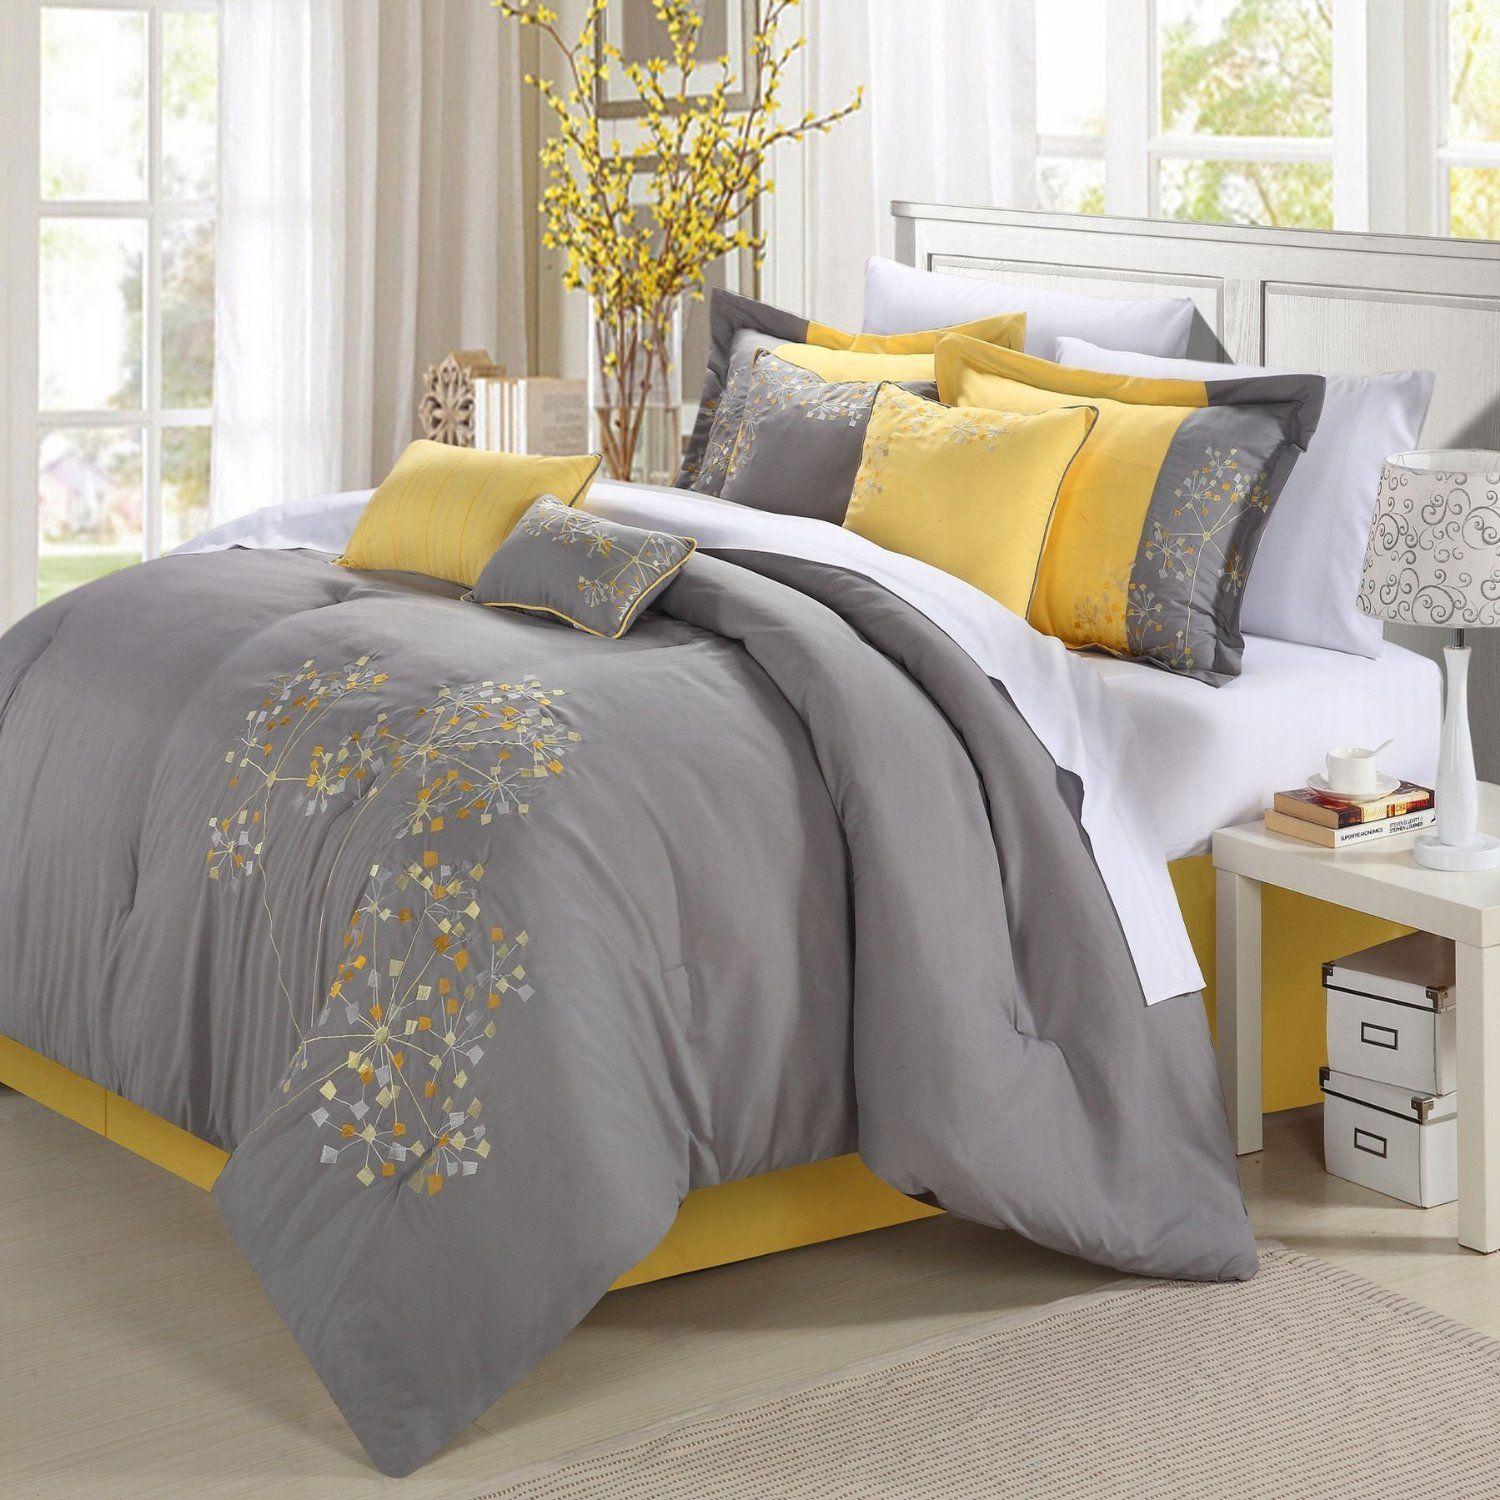 comforter makeover what give instantly s bag yellow mybedmybath in your bed com a bedroom